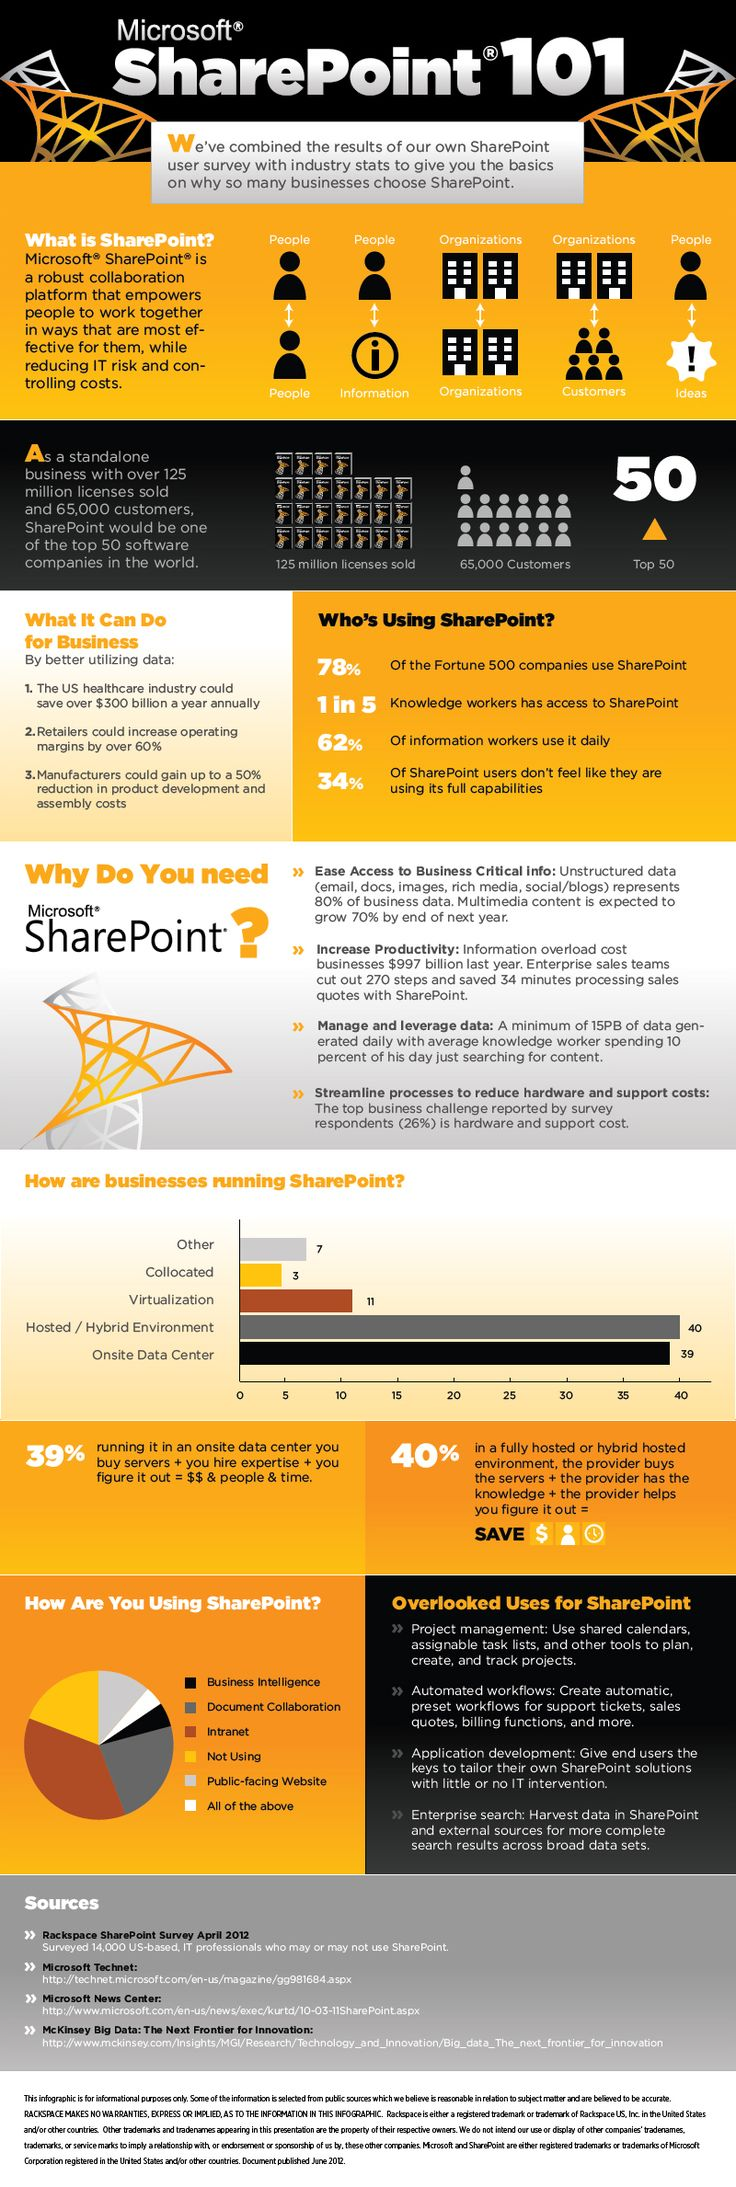 Rackspace® — Some Important Points About SharePoint [Infographic]                                                                                                                                                      Mehr